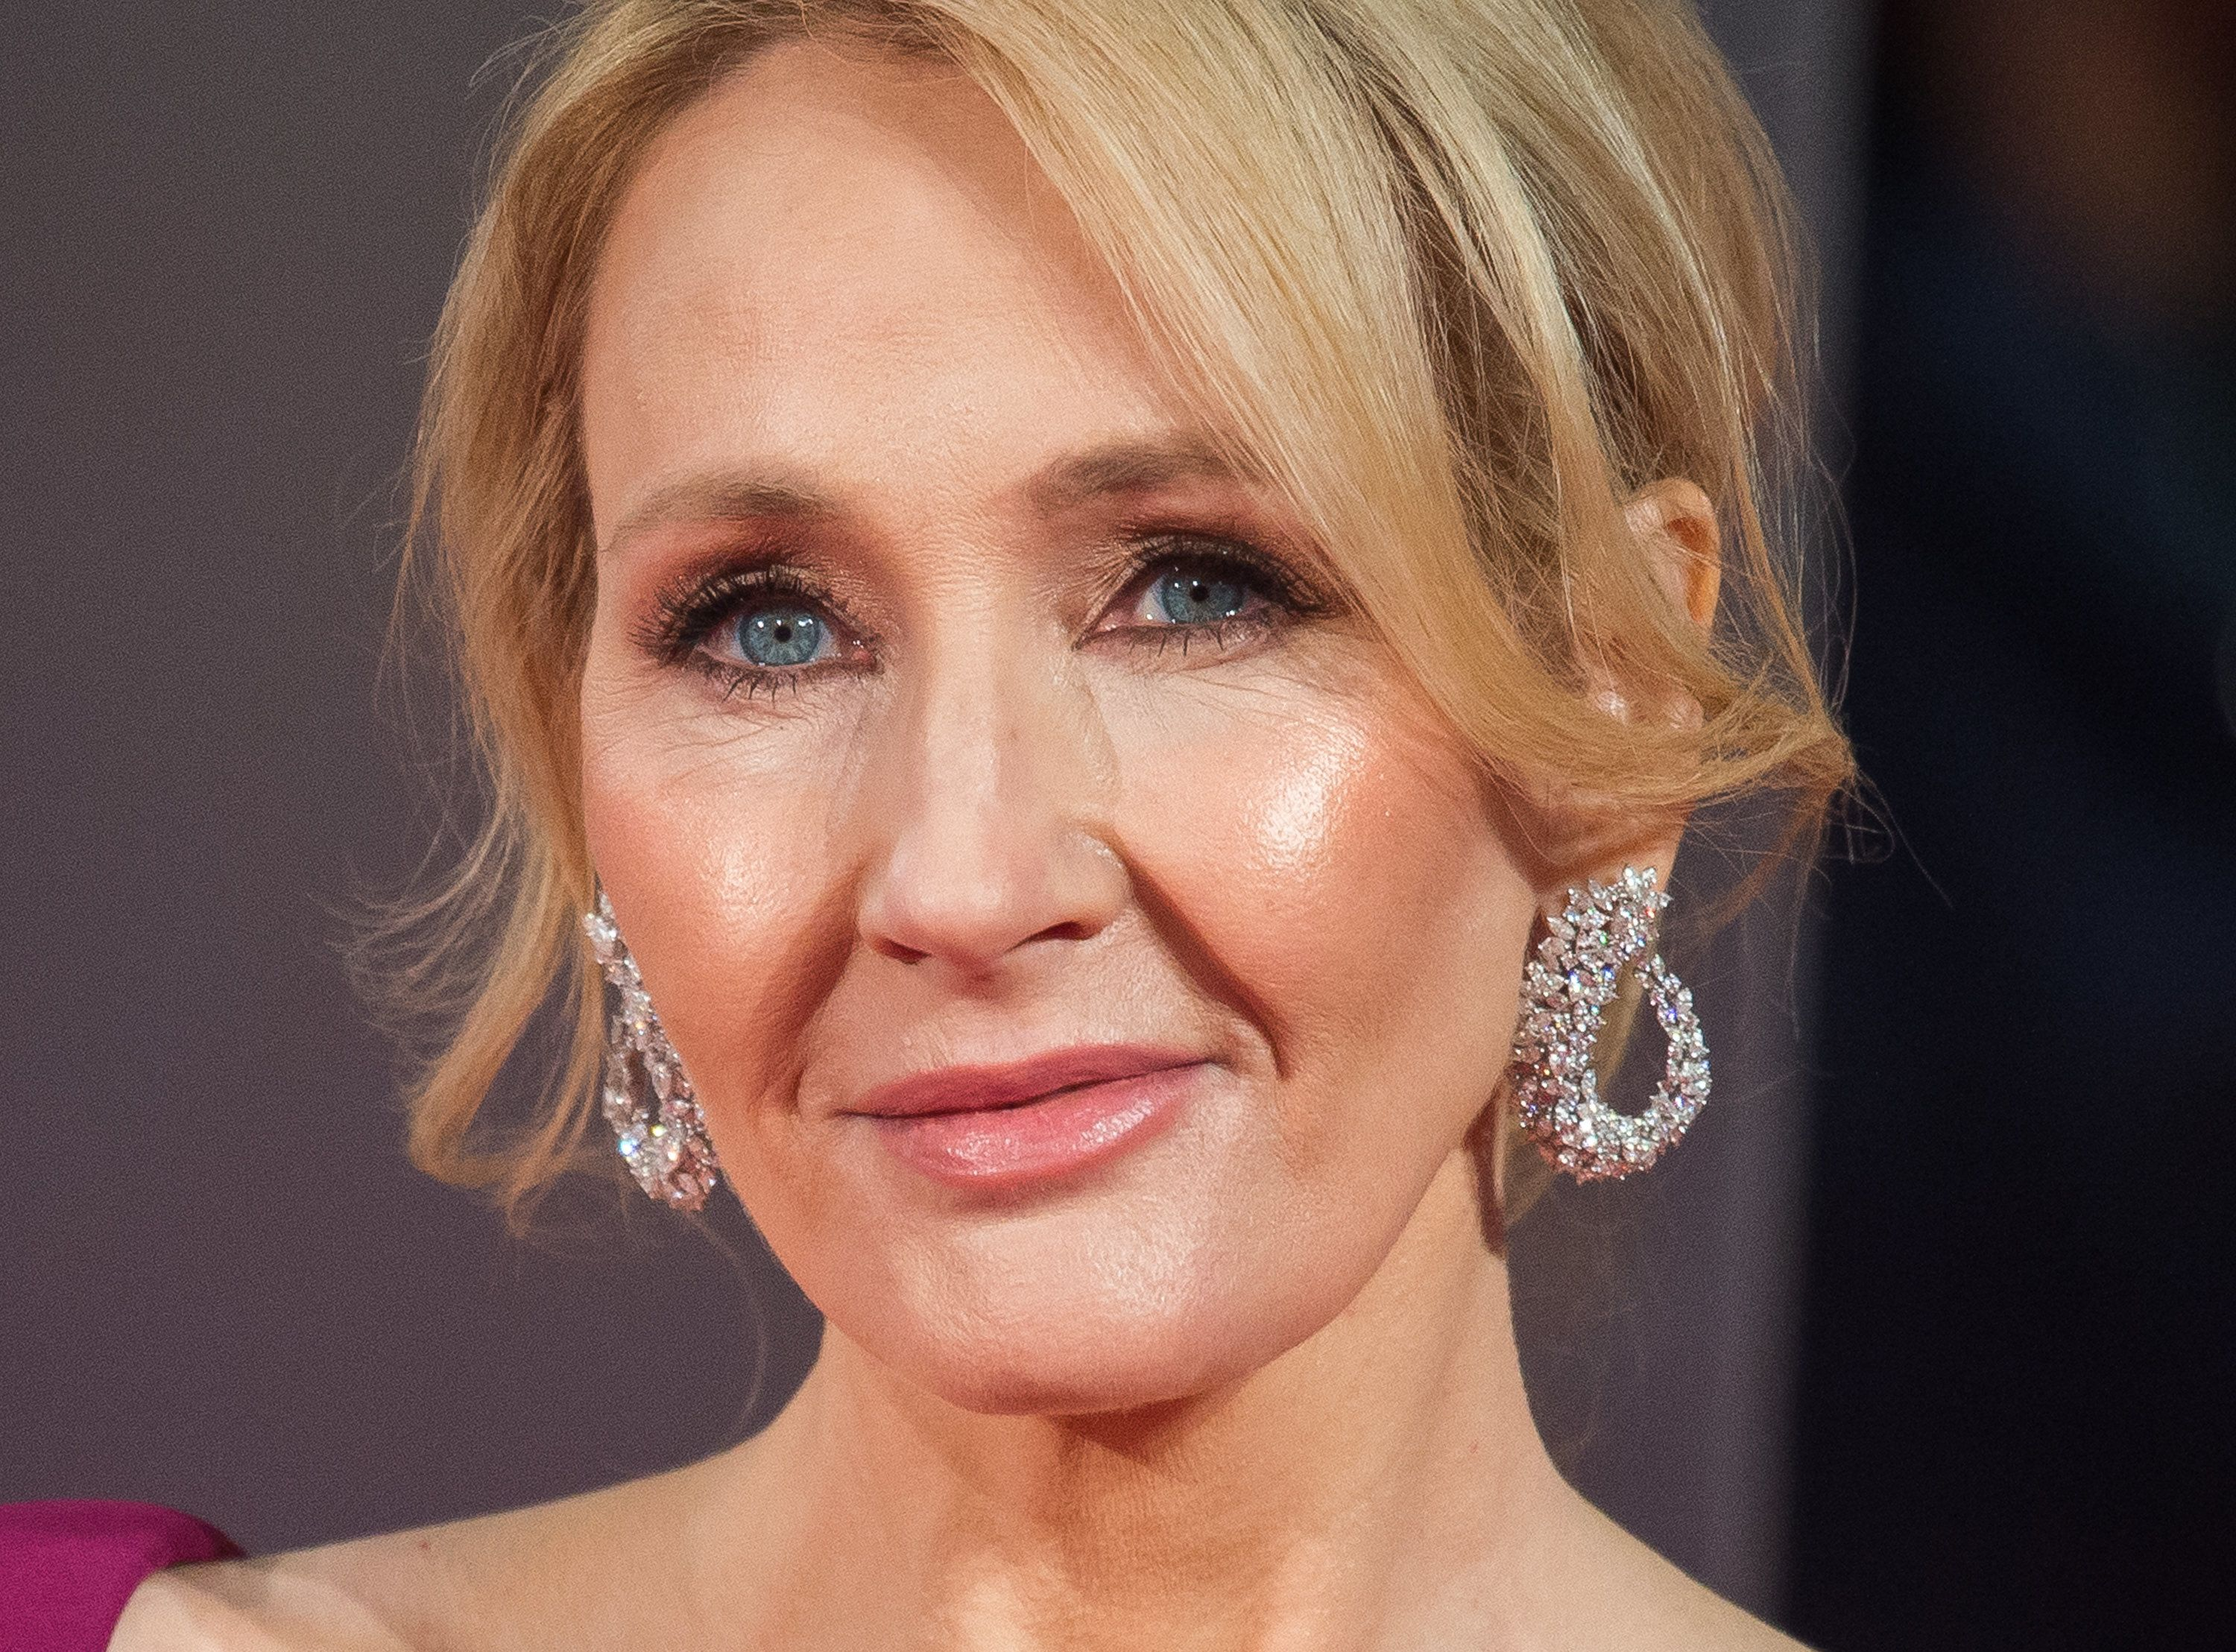 Here's How J.K. Rowling Wants To Protest Donald Trump's UK State